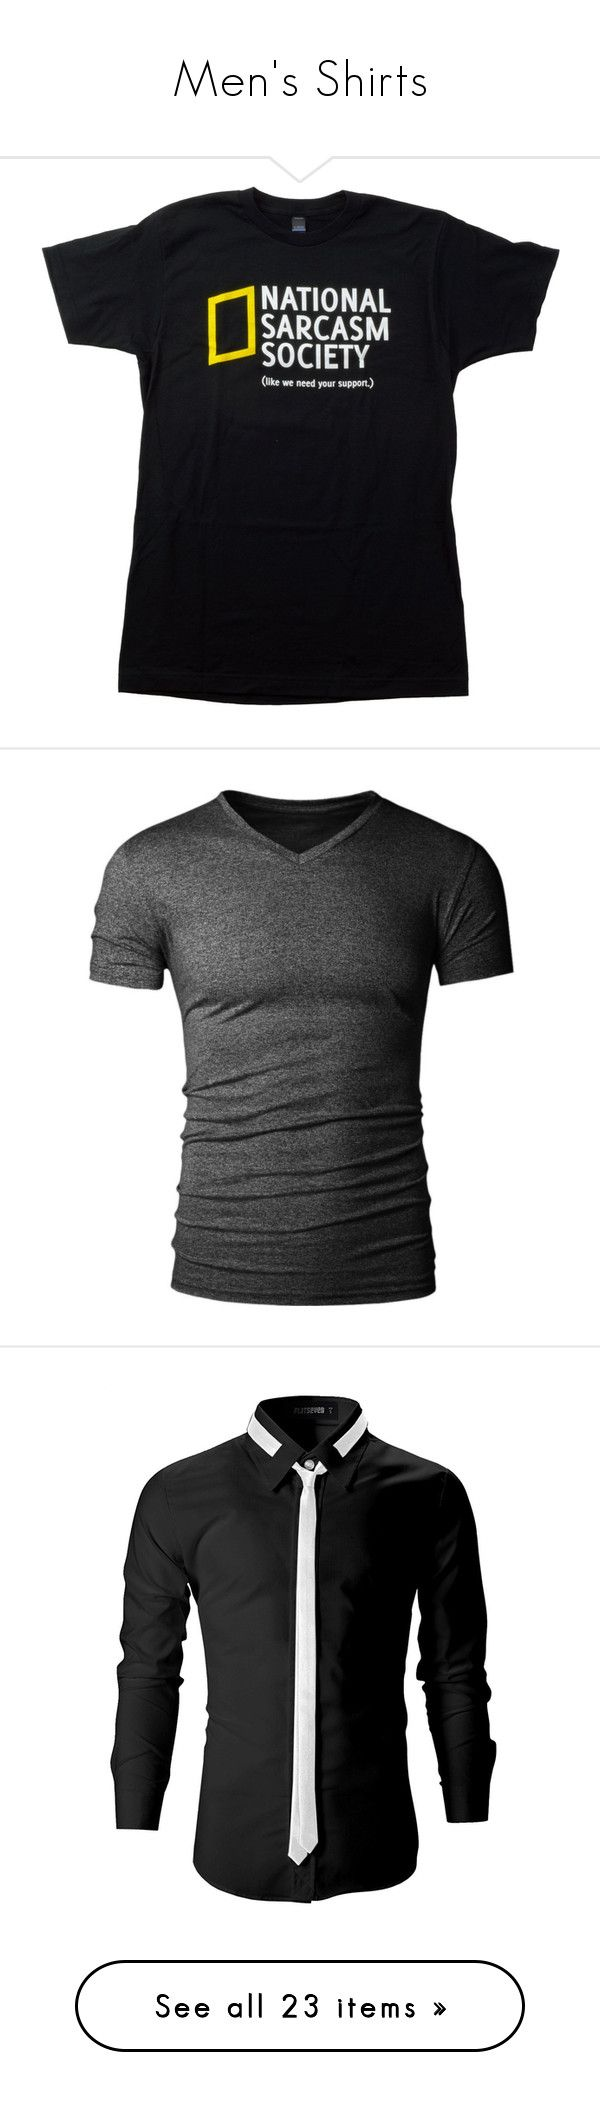 """""""Men's Shirts"""" by flamingsky ❤ liked on Polyvore featuring tops, t-shirts, shirts, shirt top, t shirt, unisex tees, tee-shirt, unisex t shirts, men's fashion and men's clothing"""